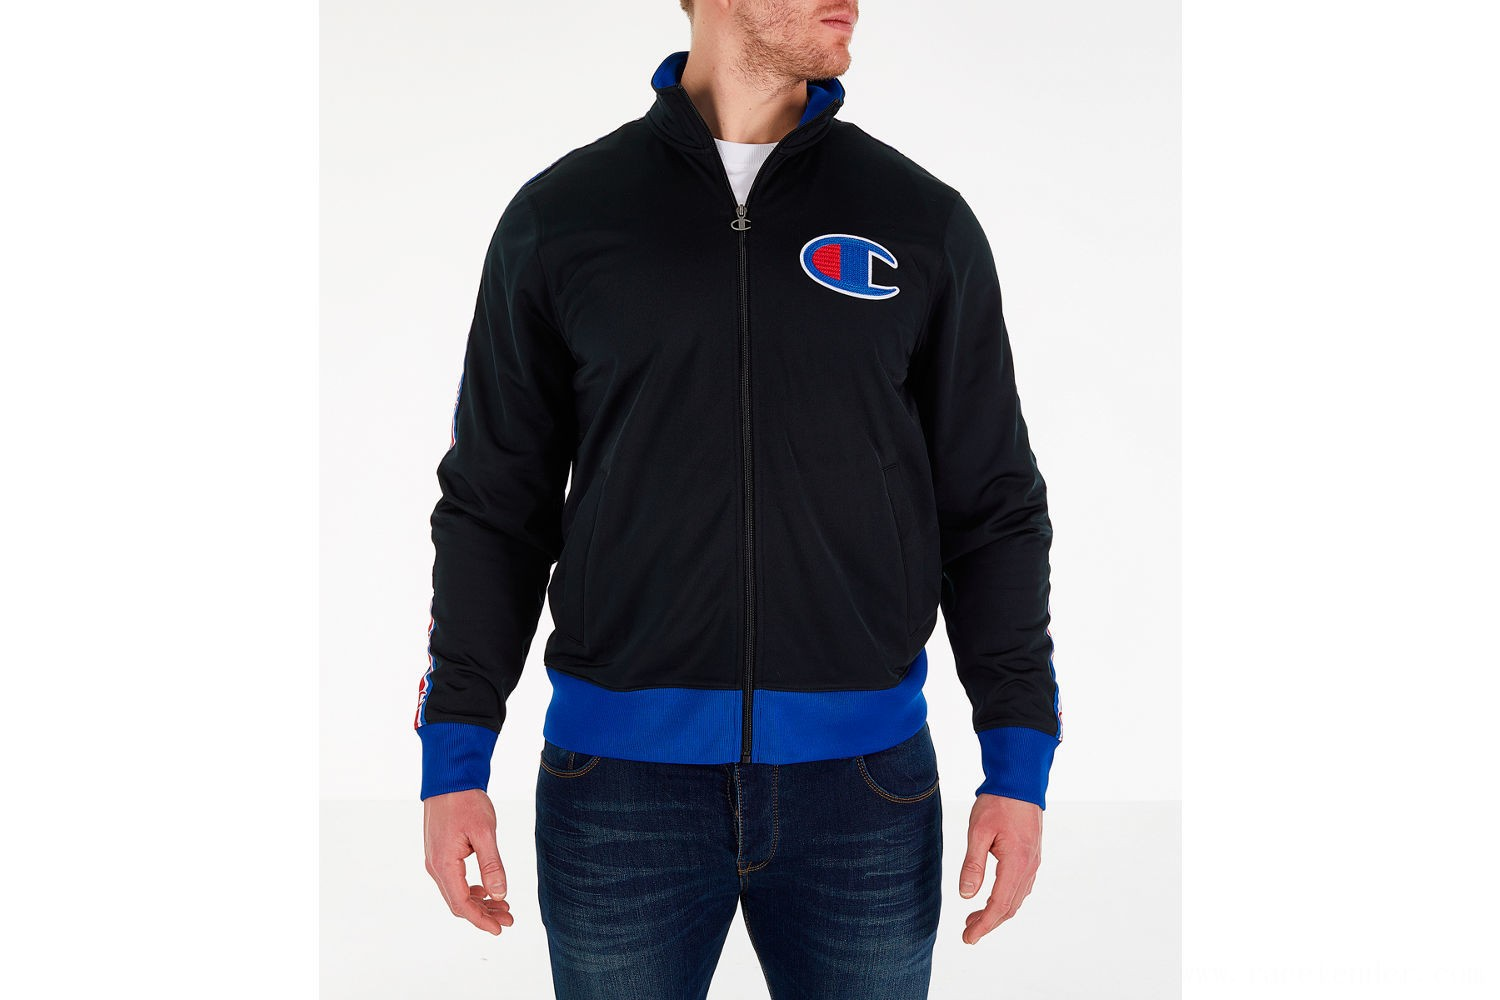 Champion Men's Track Jacket - Black/Royal